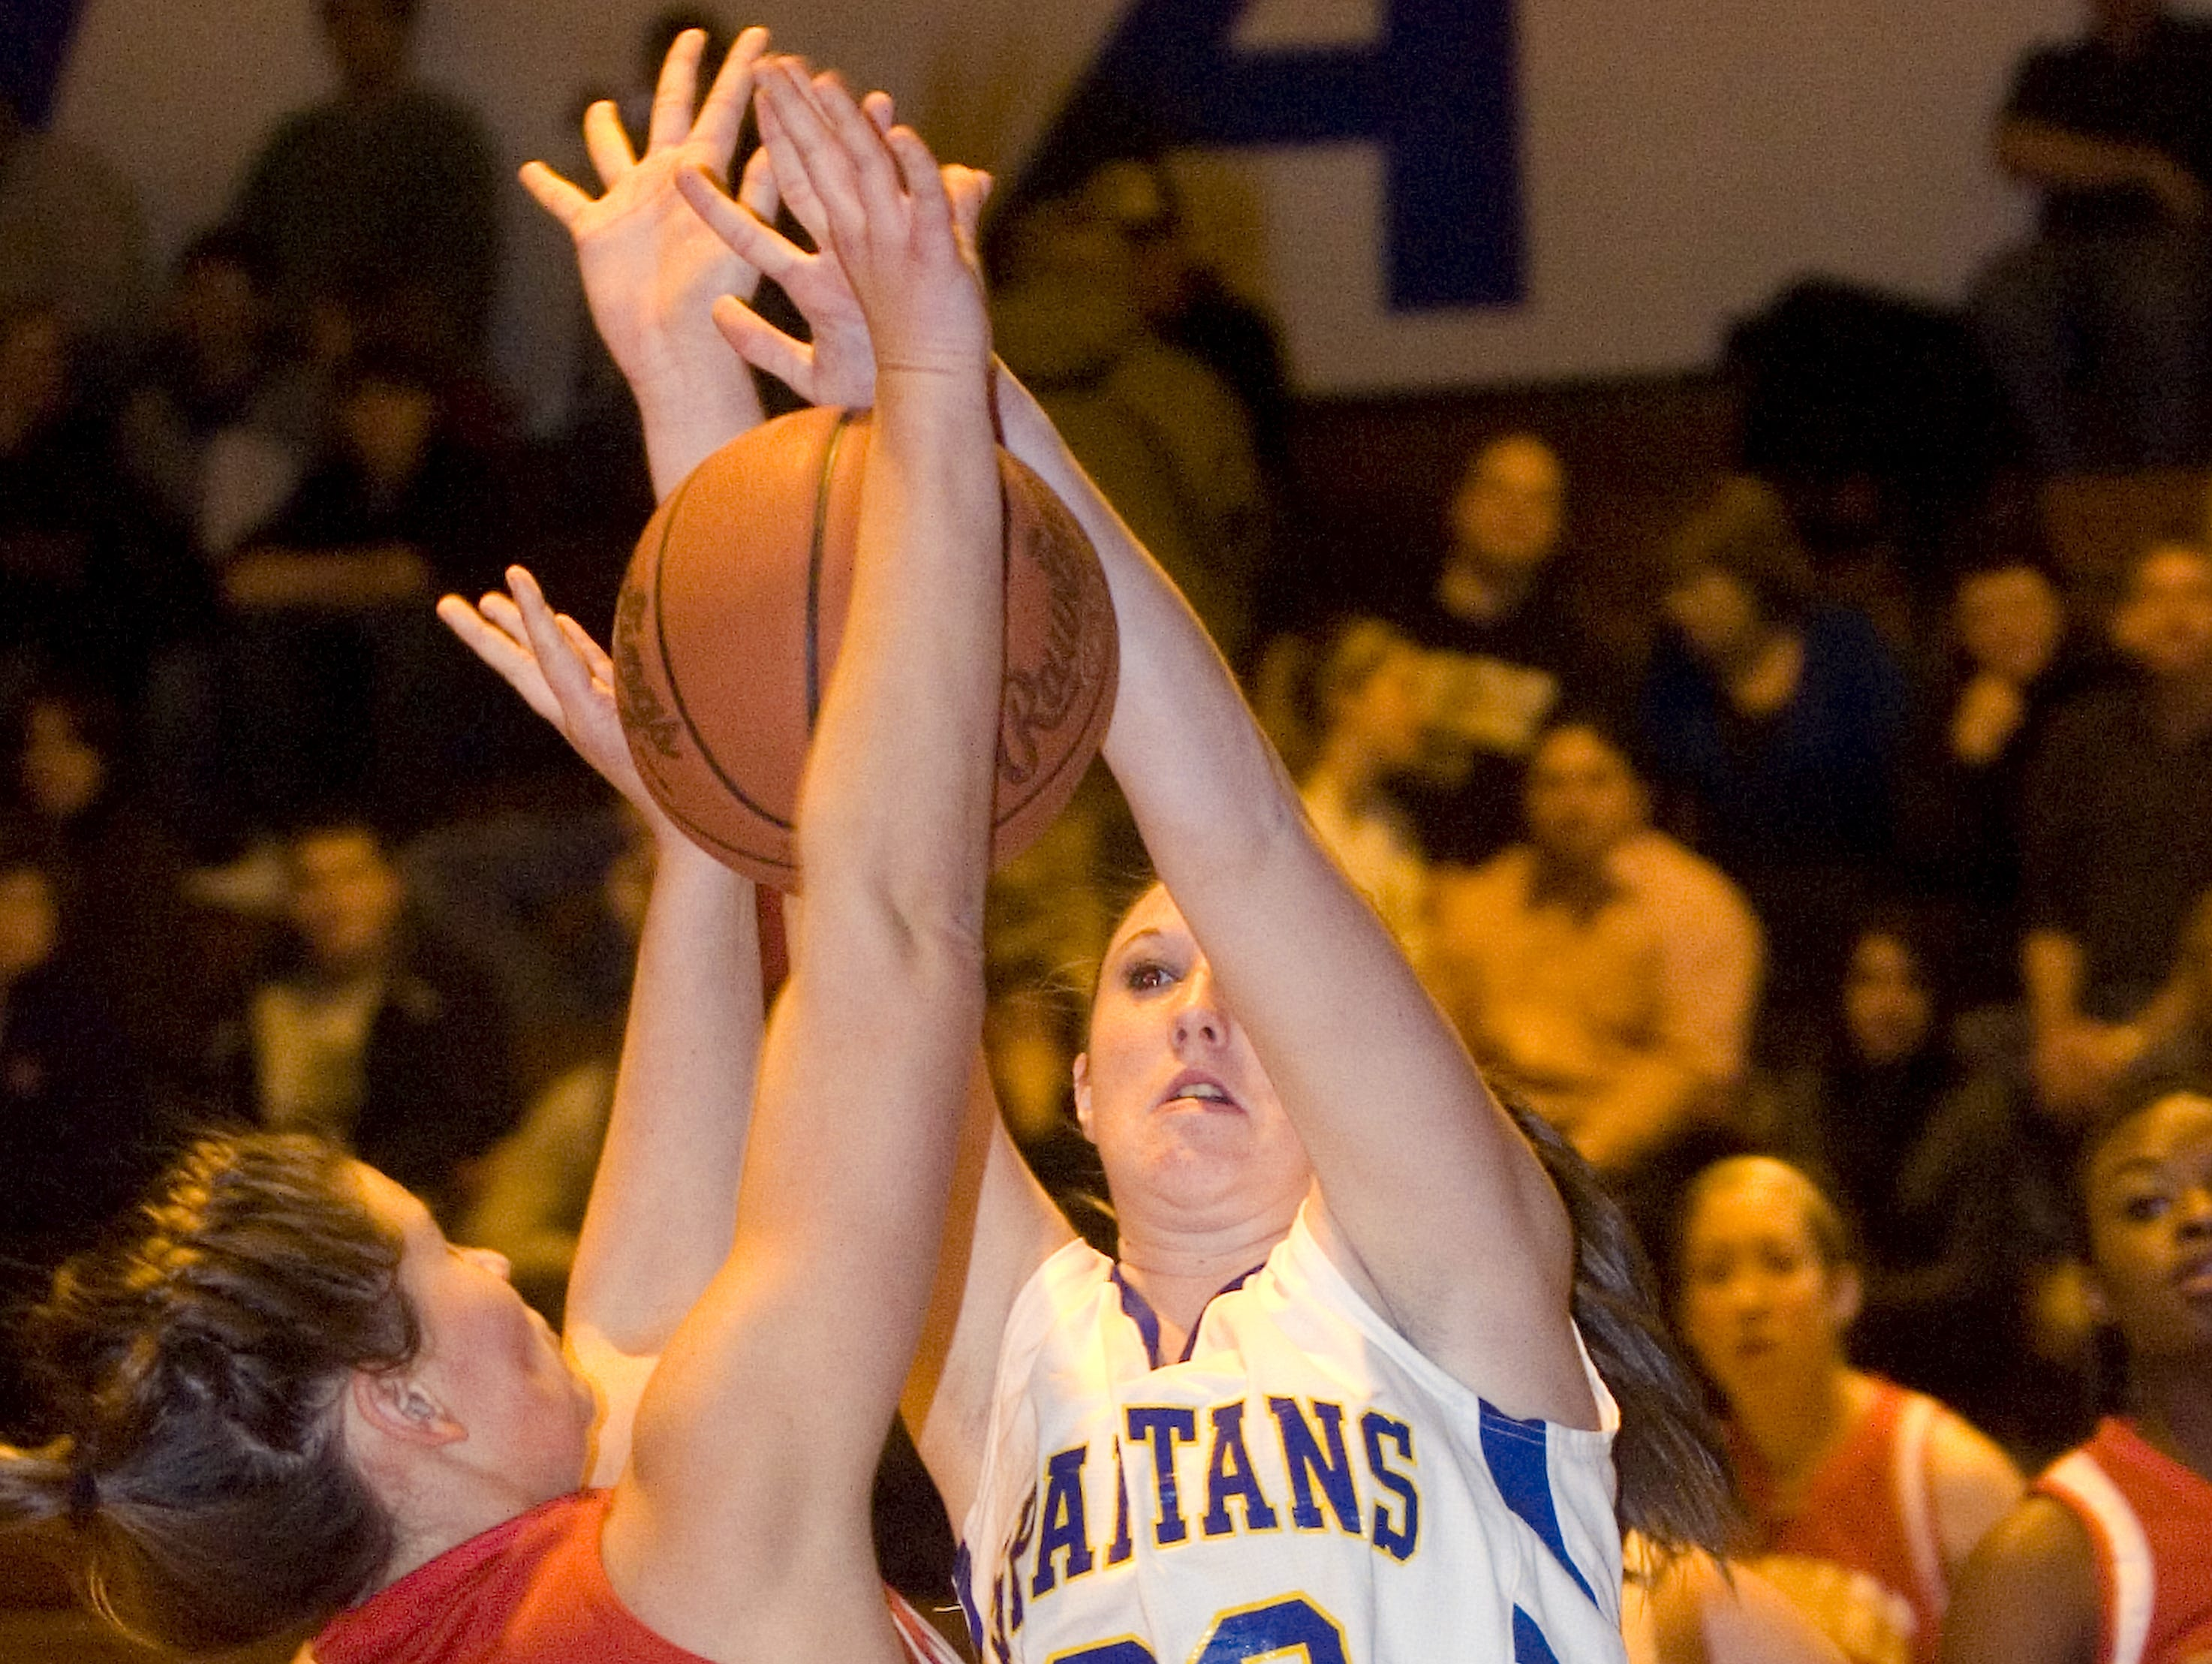 2010: Chenango Valley's Mikala King, left, is blocked by Maine-Endwell's Carrie Bushnell in the first quarter of Tuesday's game at M-E.